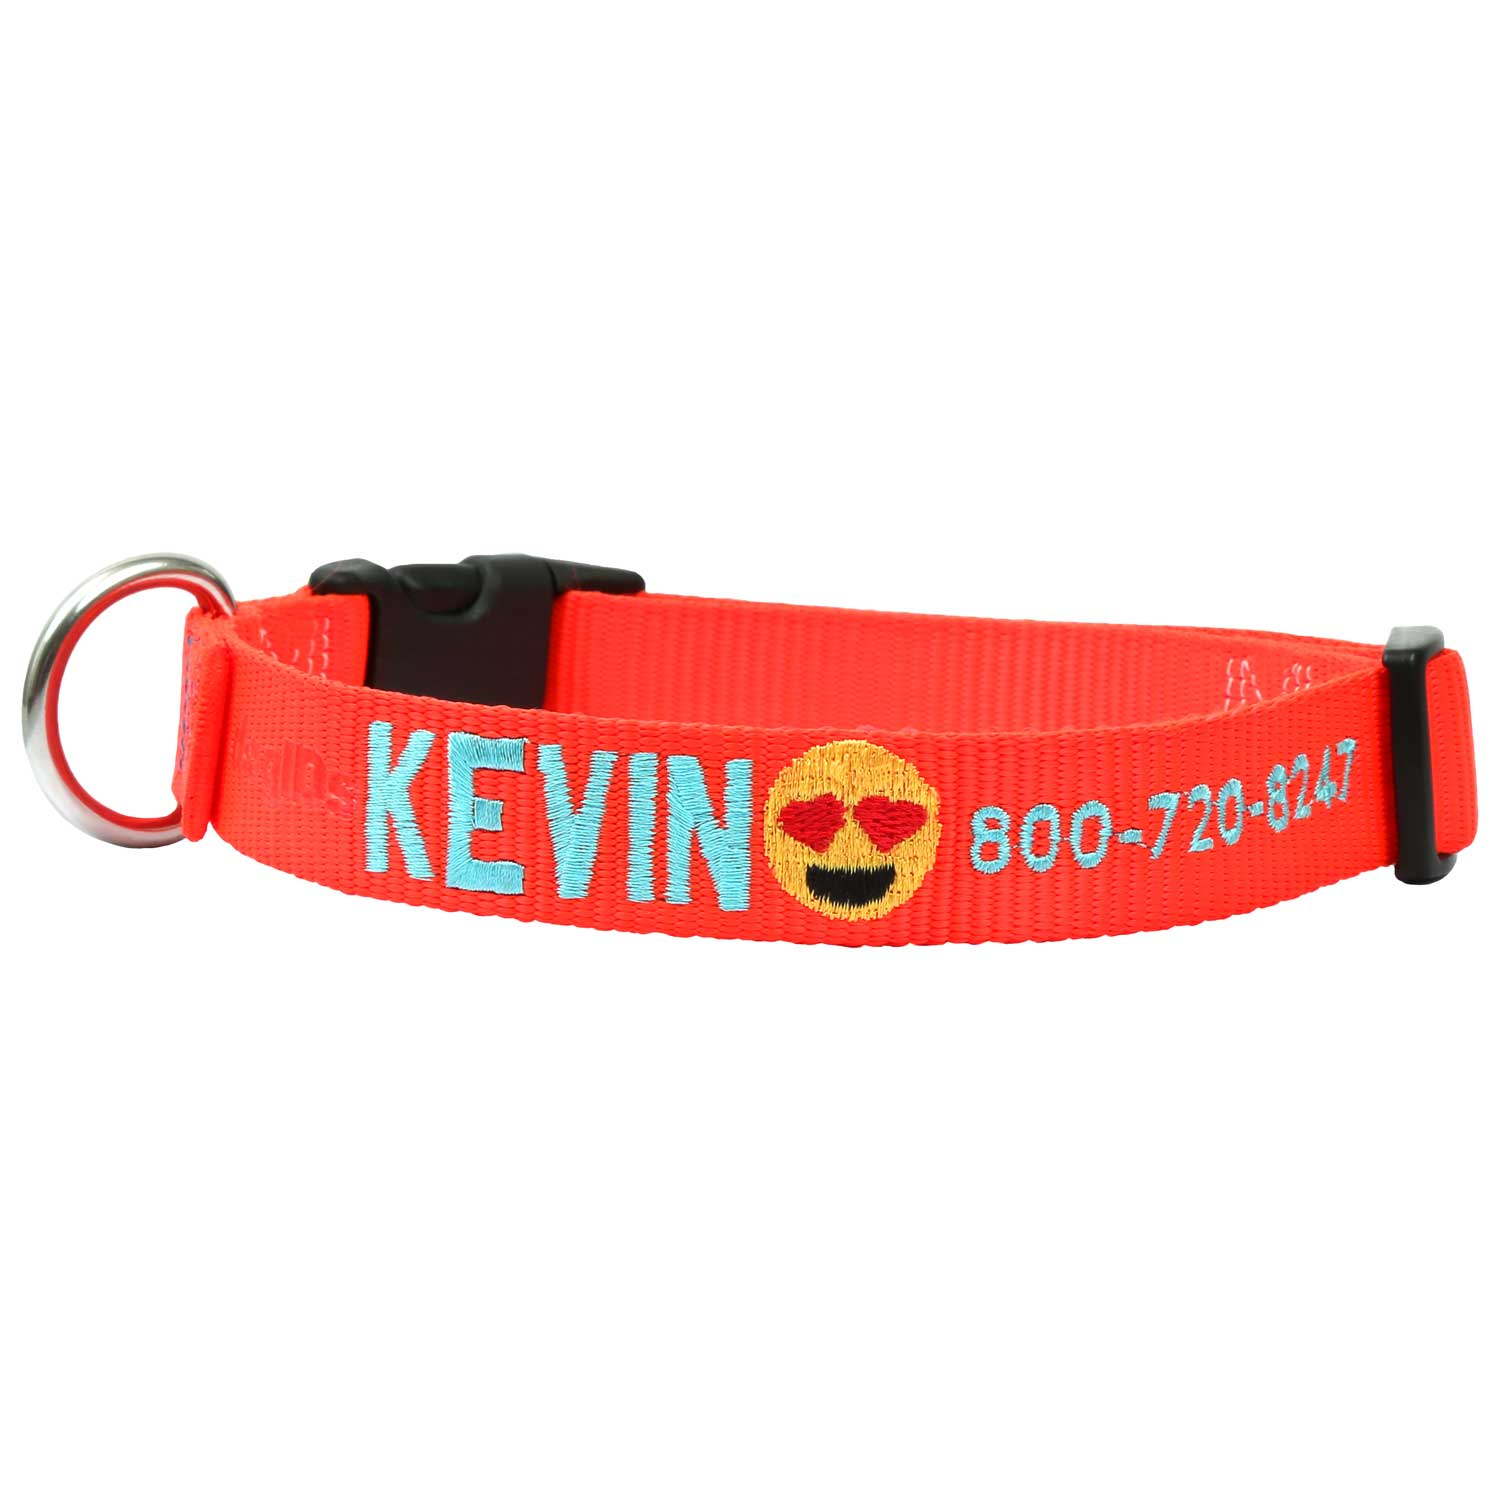 Custom Embroidered Emoji Dog Collar - Orange Collar, Turquoise Thread, Smiling Face with Heart Eyes Emoji